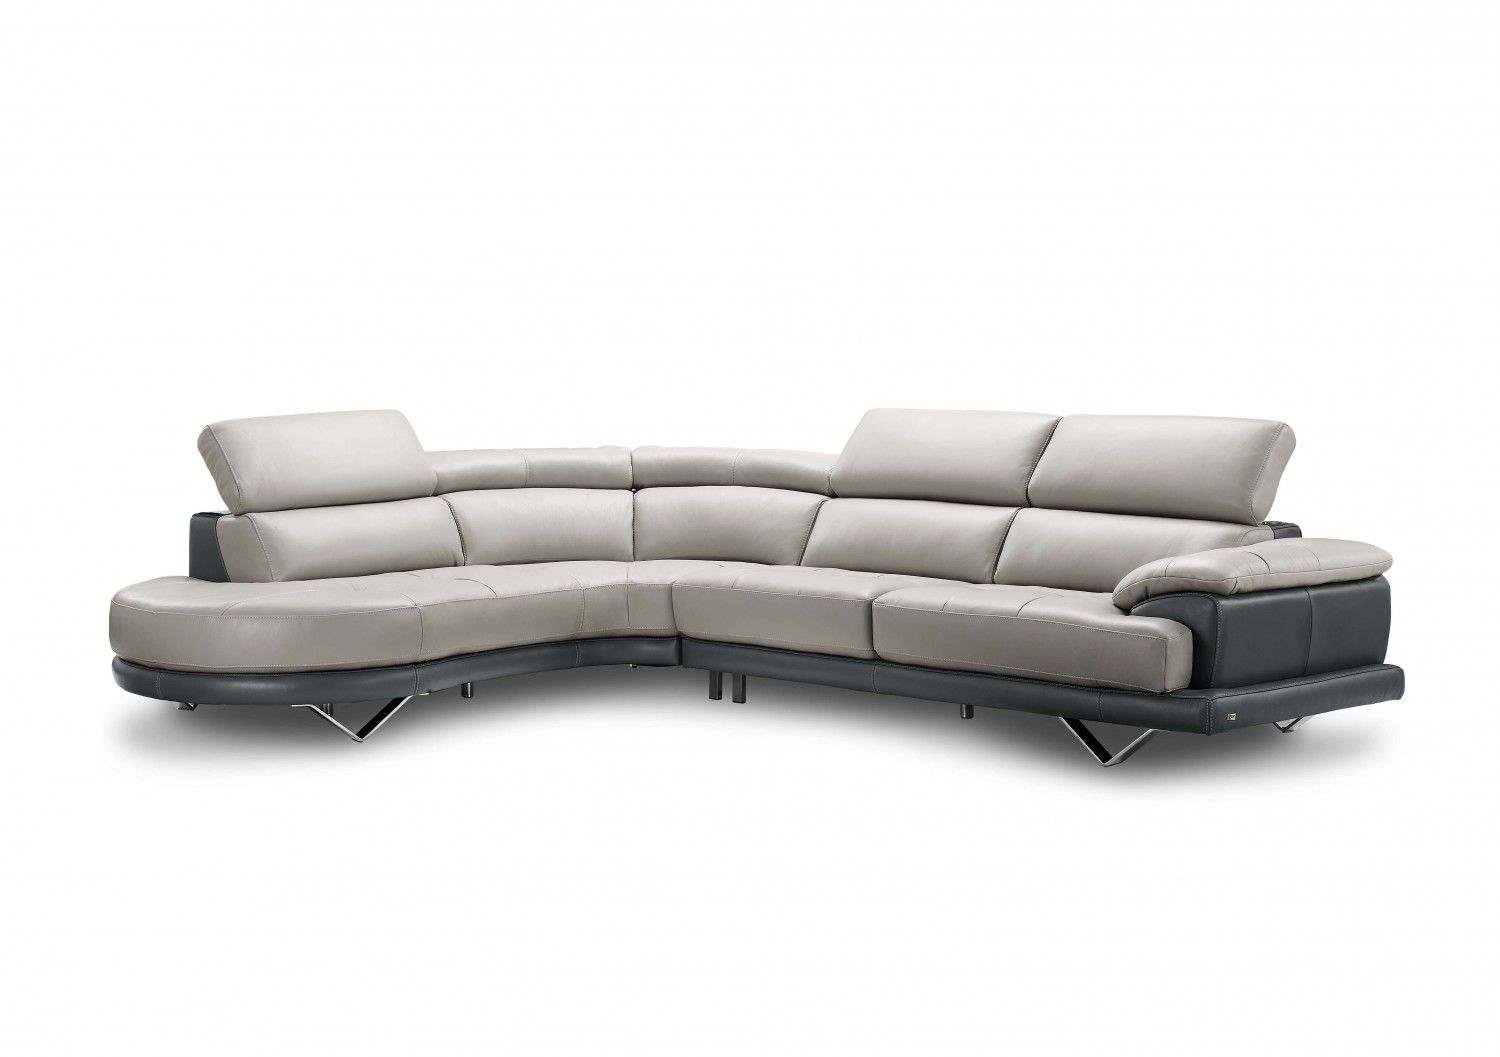 cecile leather sectional creative furniture in 2019 furniture by rh pinterest com